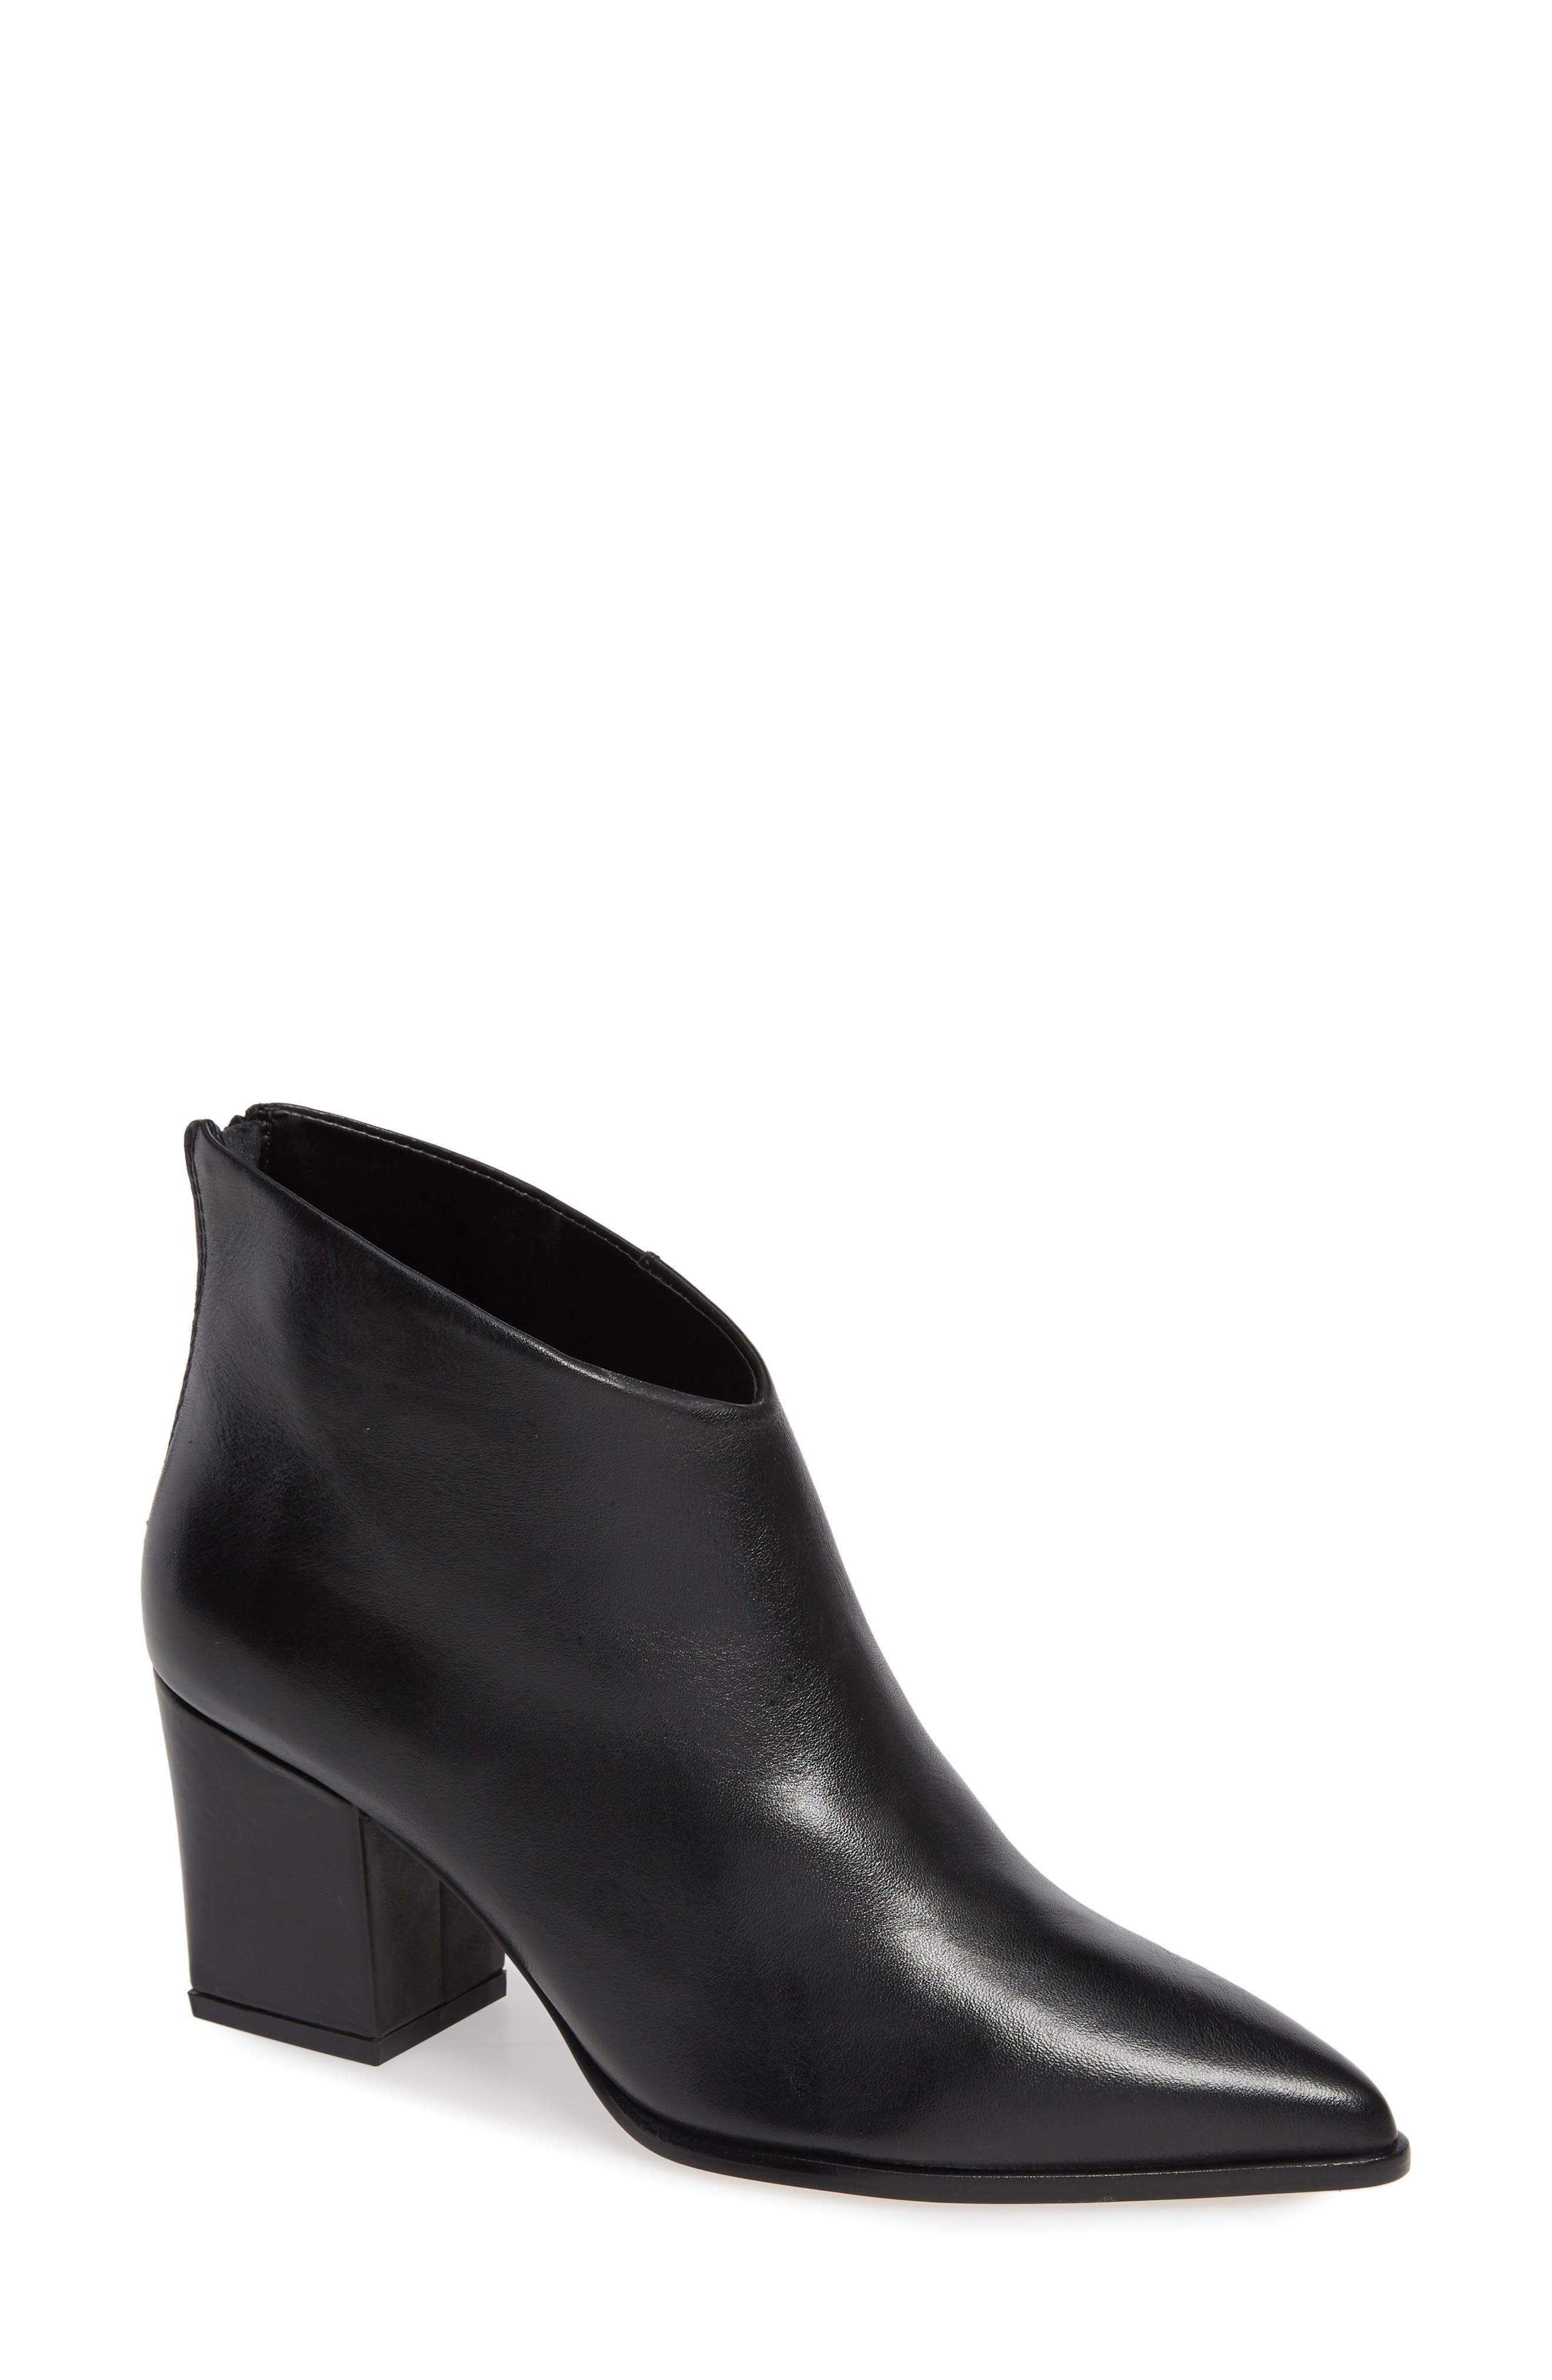 LUST FOR LIFE Twilight Bootie in Black Leather